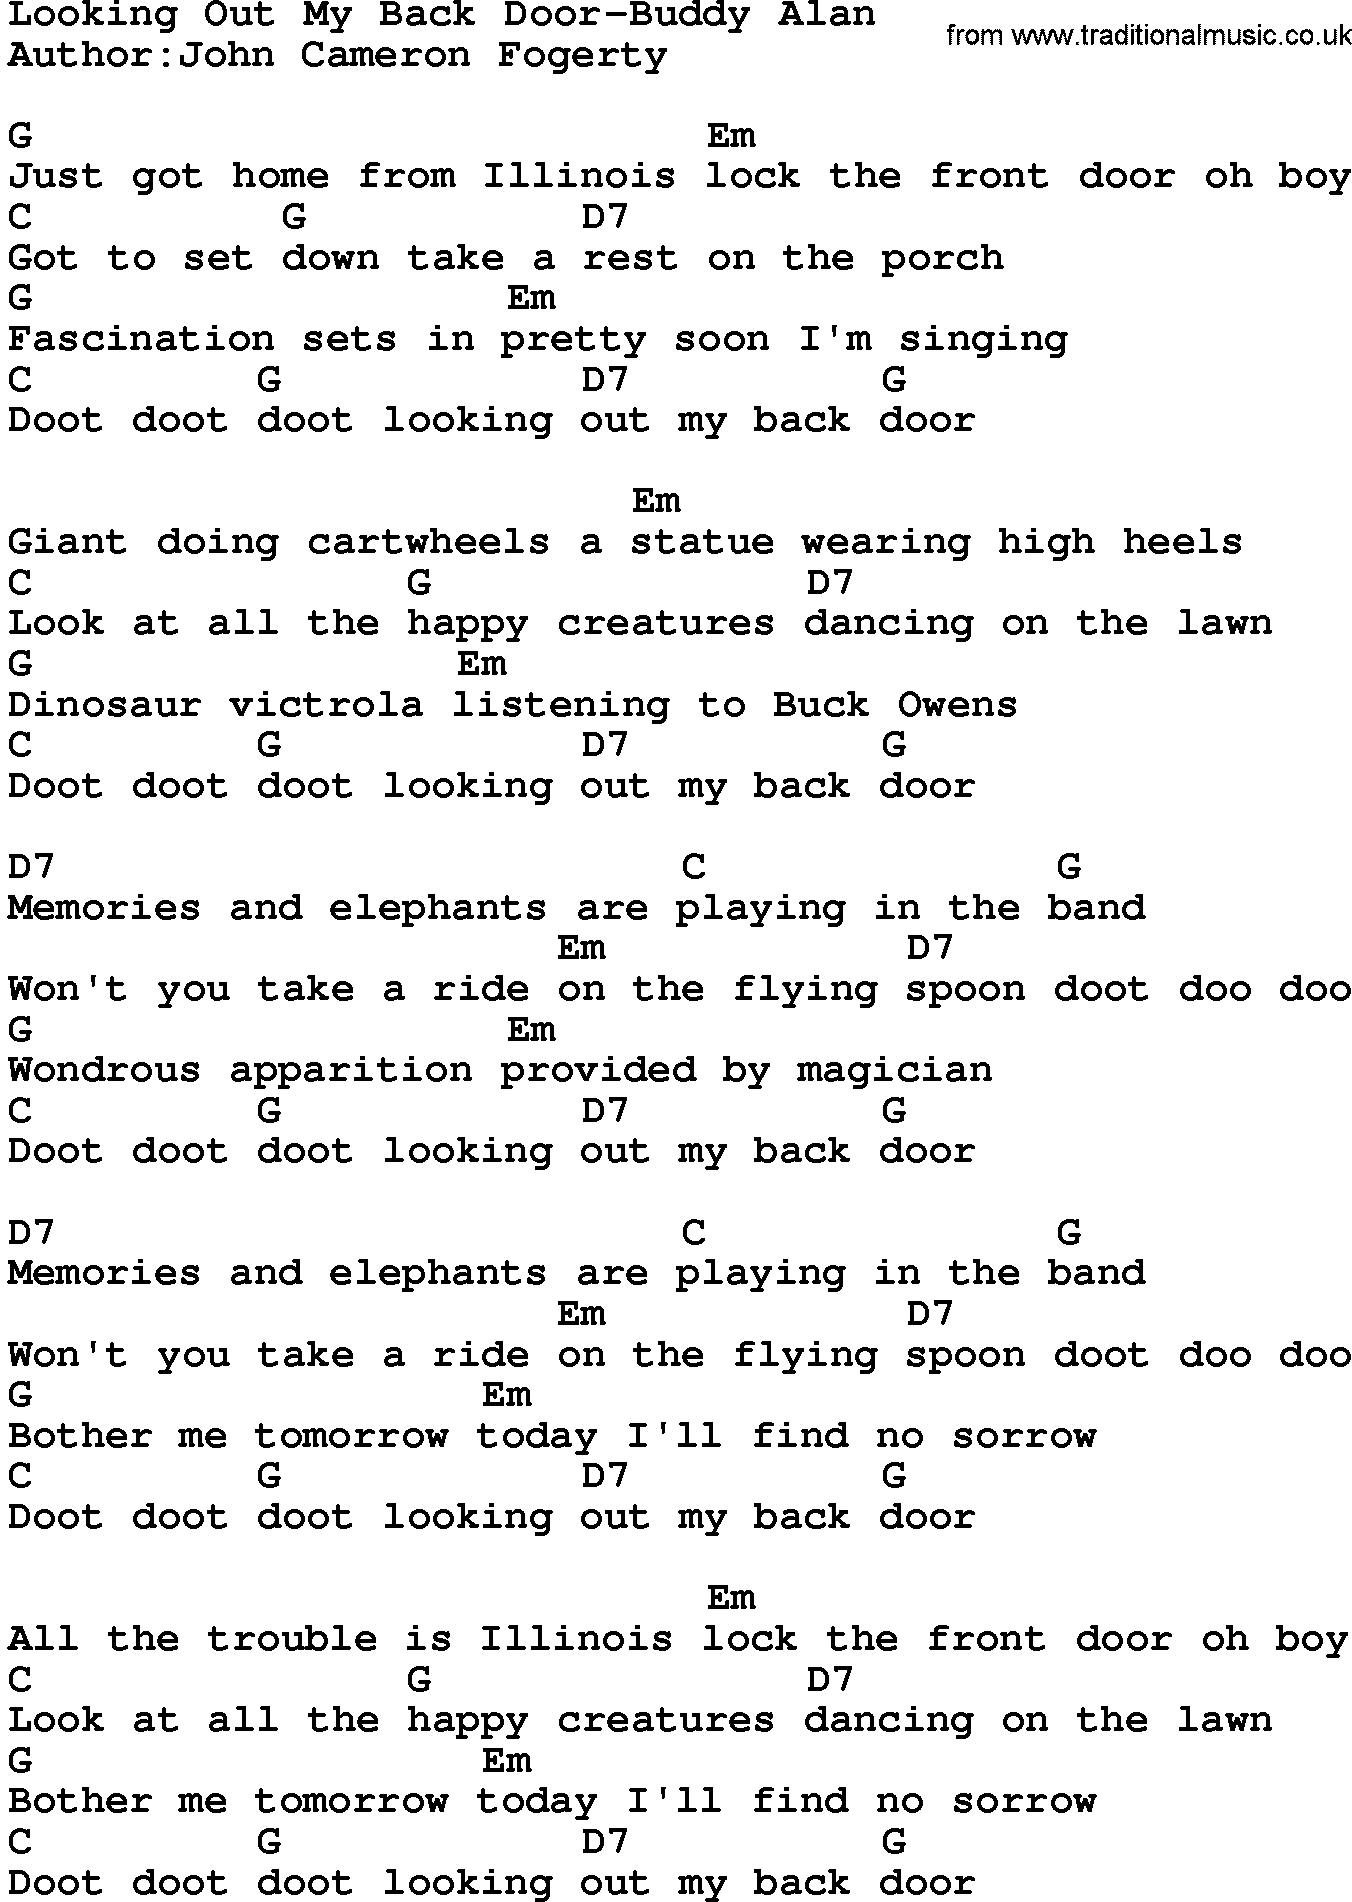 Country Music:Looking Out My Back Door-Buddy Alan Lyrics and Chords